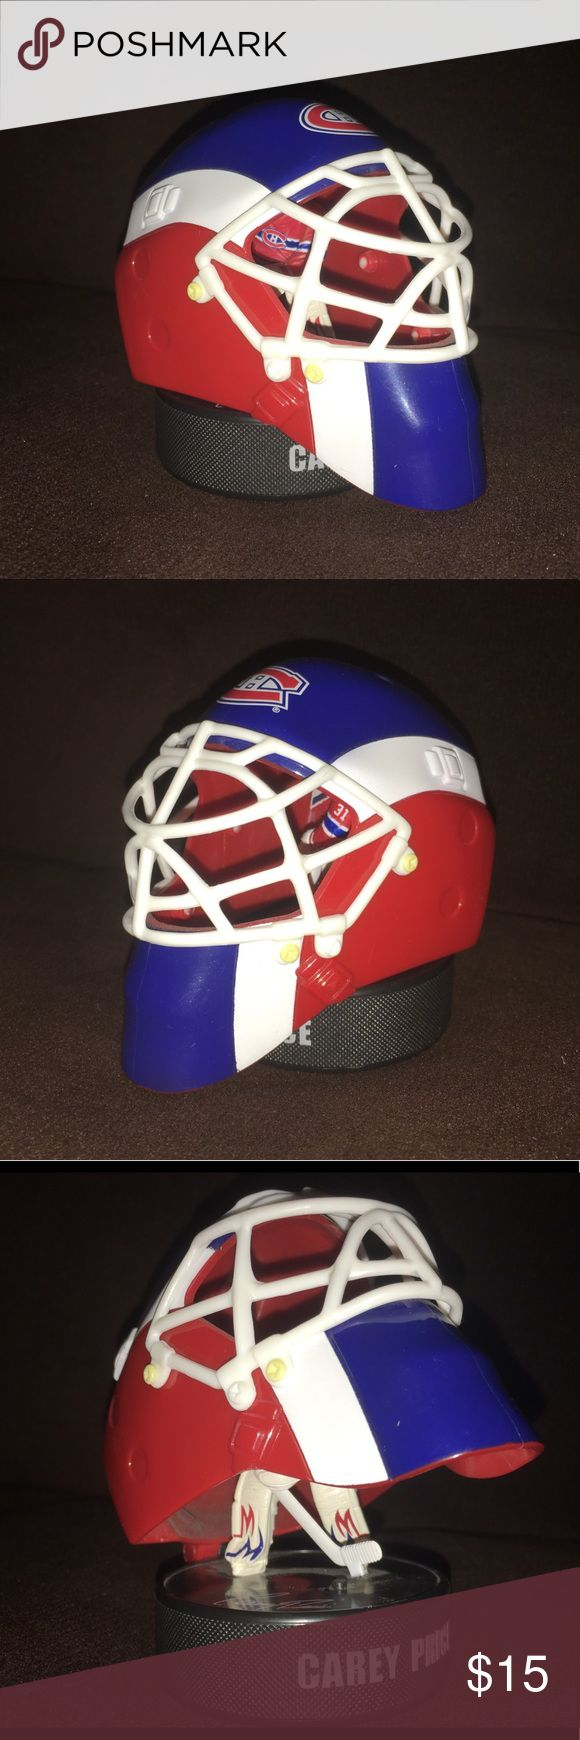 """Montréal Canadiens Carey Price happy meal toy Thank you for viewing my listing, for sale is a 2009, McDonald's, kids happy meal, NHL, goalie mask toy.  This is for the Montréal Canadiens and their goalie Carey Price  Item measures appx 4""""X4"""" Great for display, on the nightstand or a mantle. Perfect for any diehard Canadiens fan  I have another one of these for sale that is brand-new in the package. Please view that listing if you were interested.  If you have any questions or would like…"""